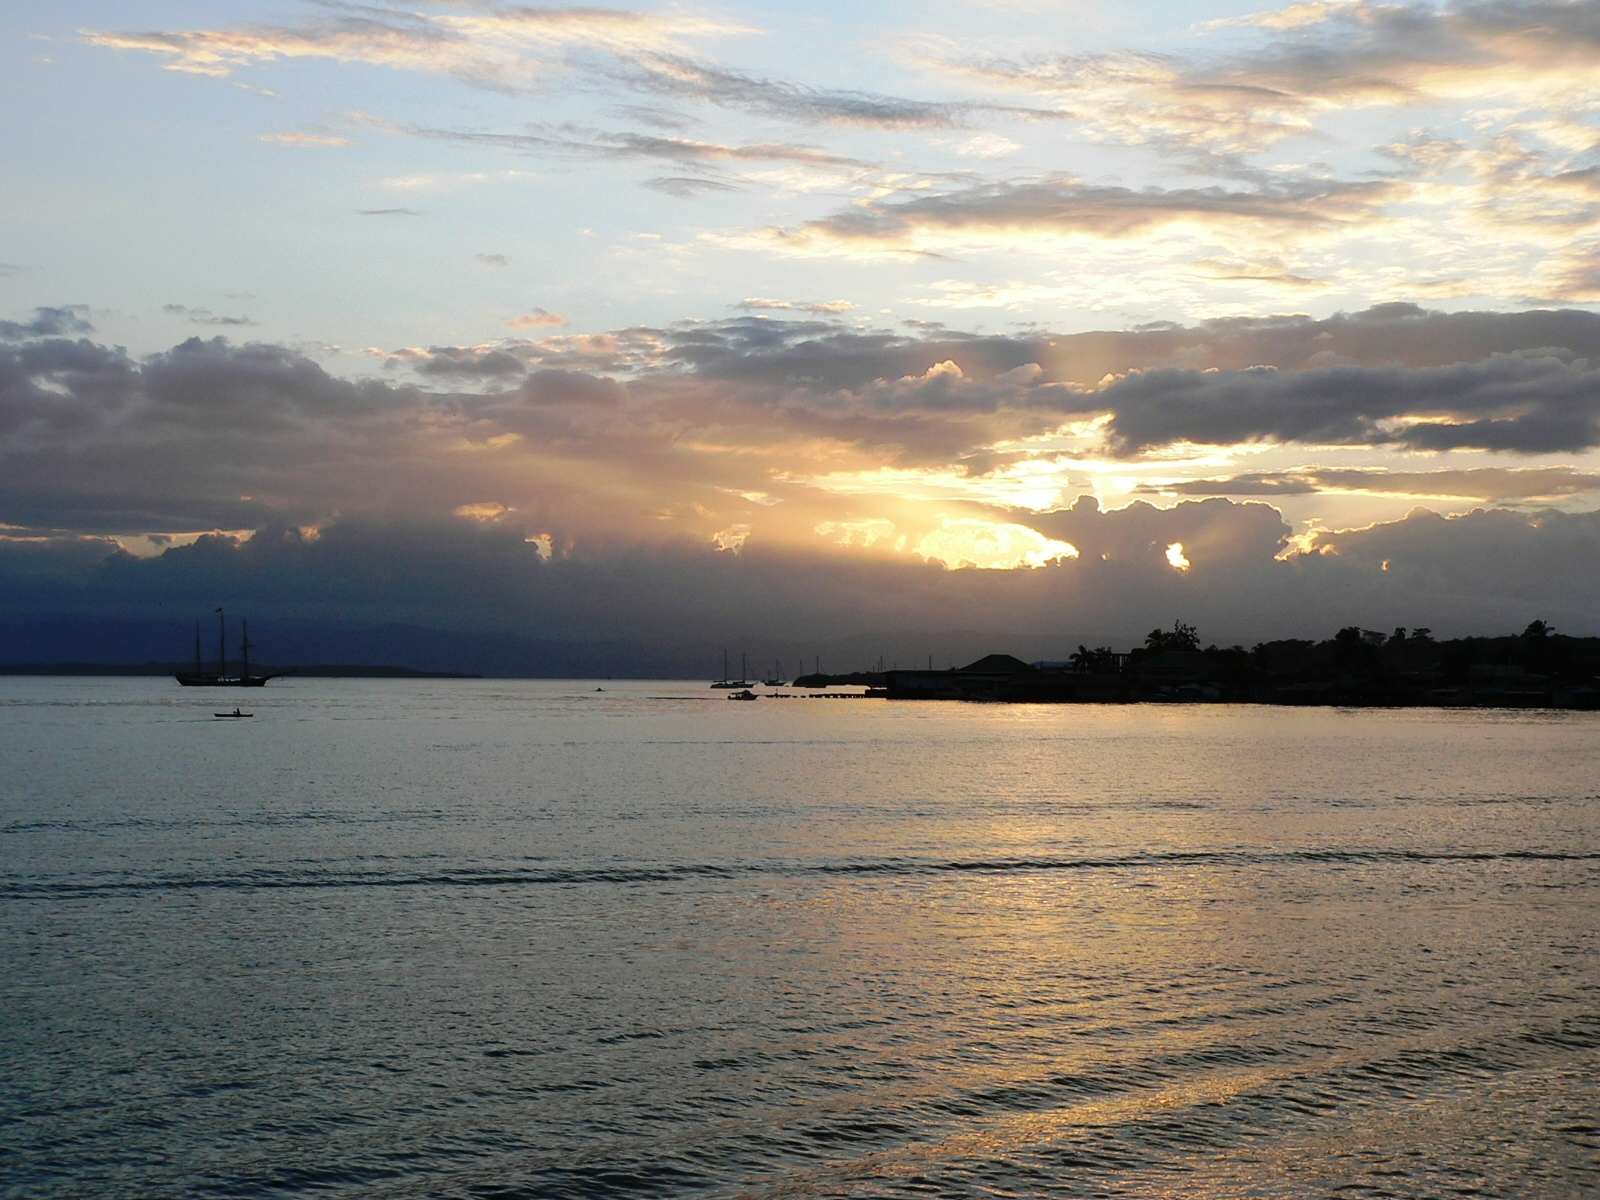 Bocas del Toro, Panama sailboat and sunset